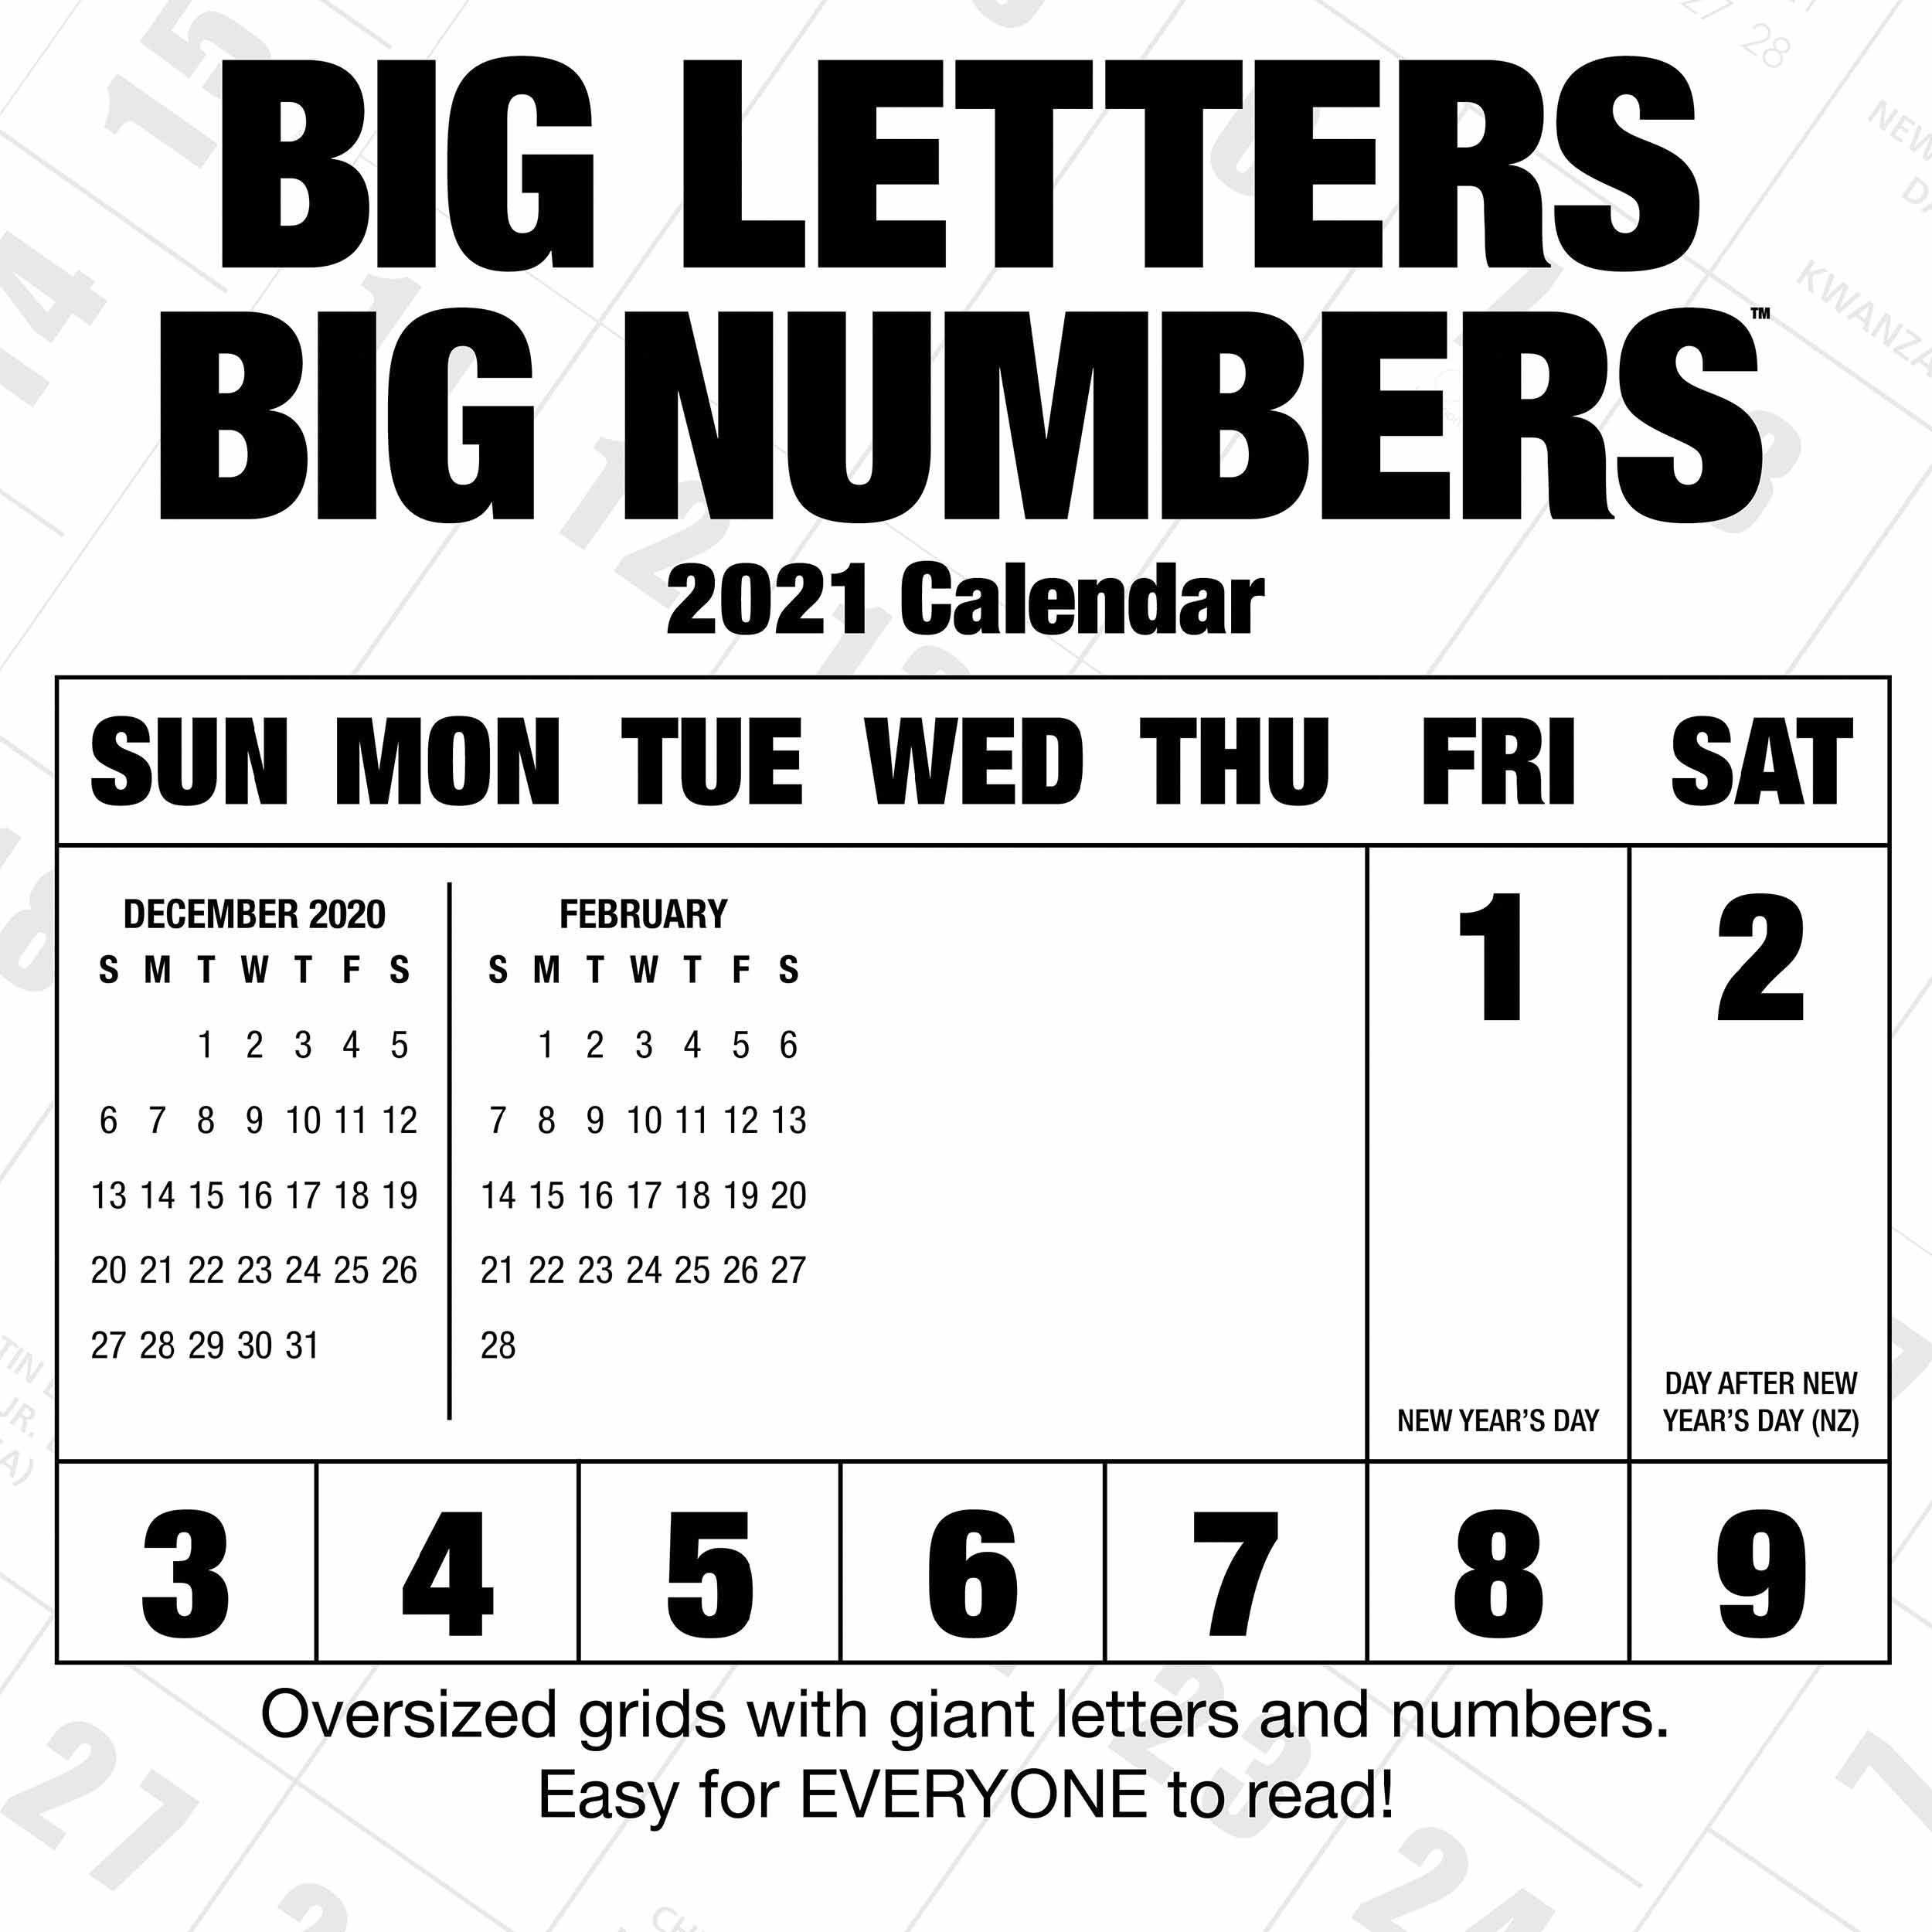 Big Letters Big Numbers Calendar 2021 At Calendar Club